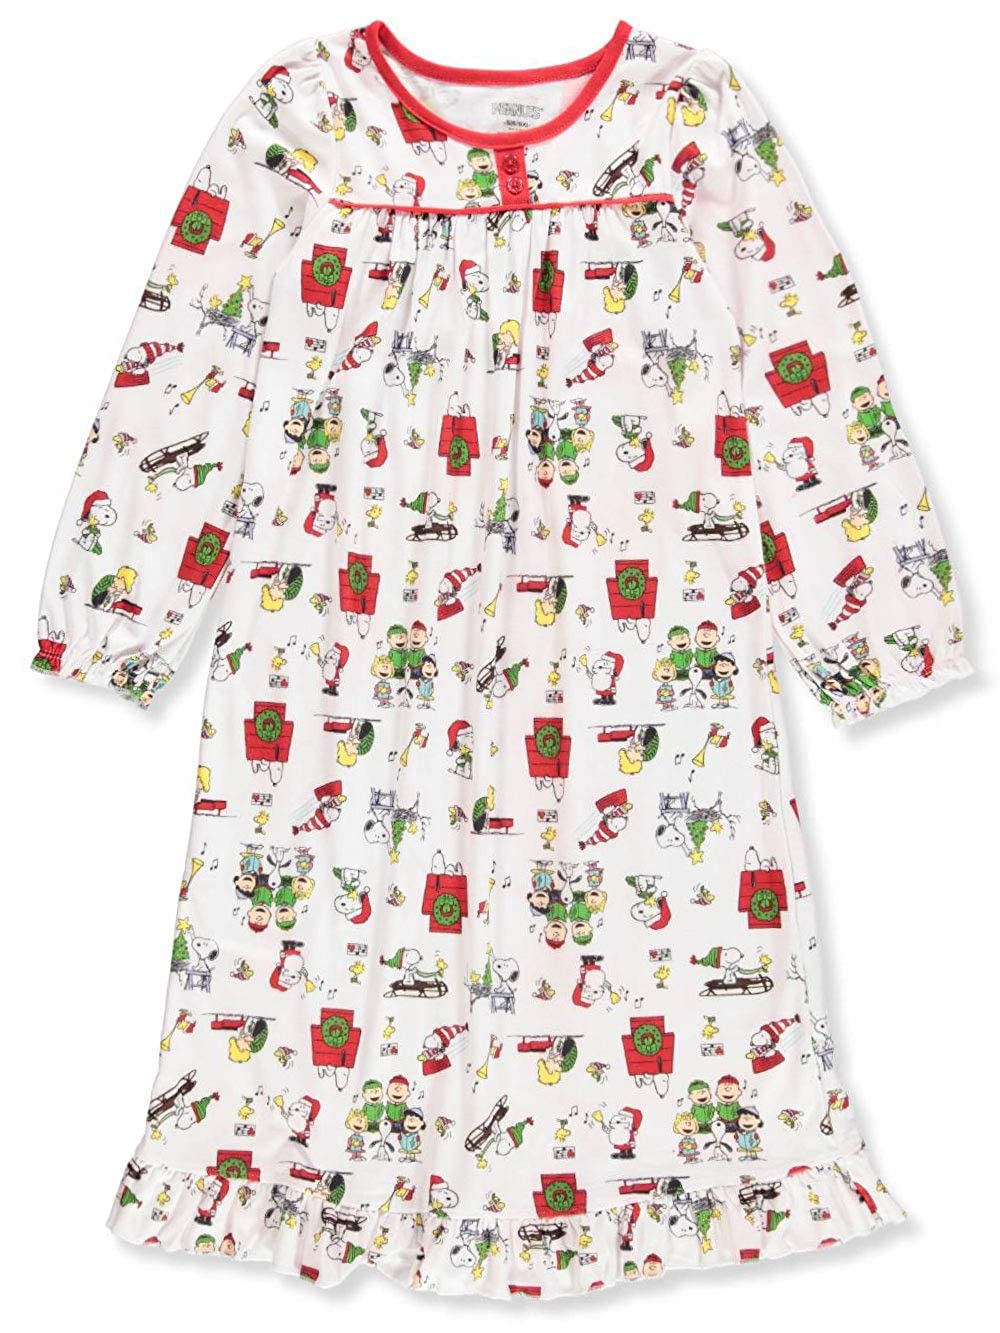 Peanuts Toddler Girls Christmas Holiday Granny Gown Nightgown Pajamas manufacturer